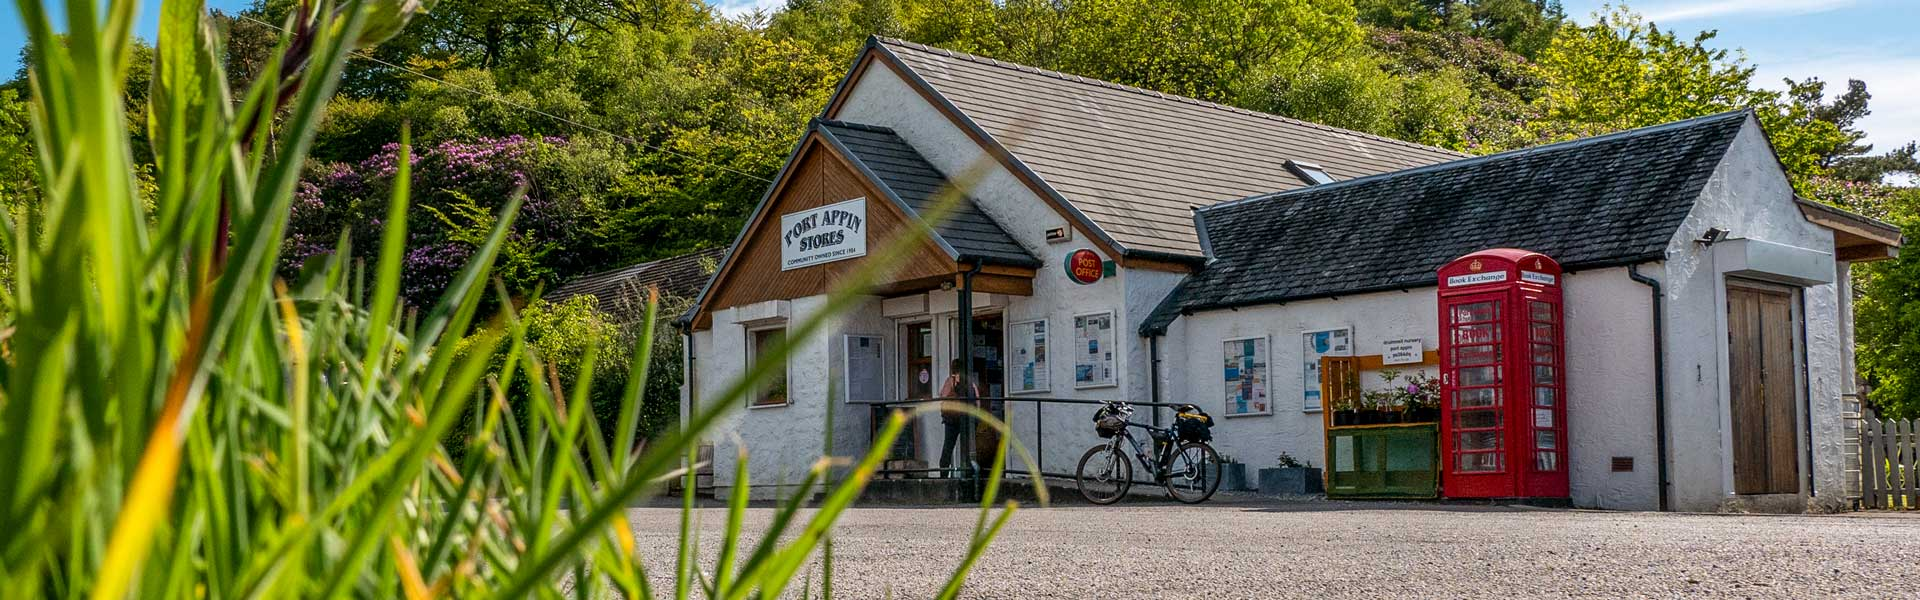 Port Appin Stores - community owned and well-stocked with fresh, local foods and everyday groceries